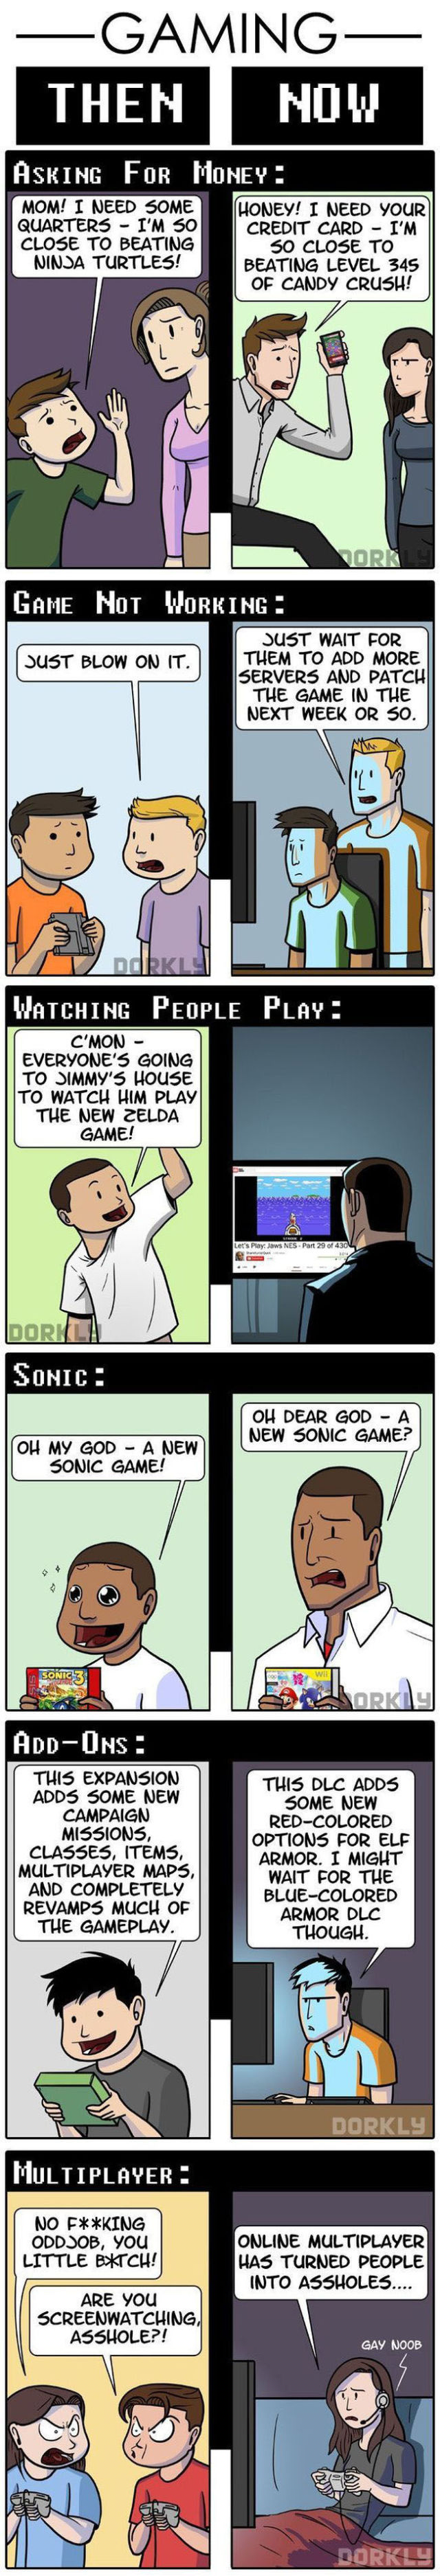 A Review of Gaming from the Past and Present